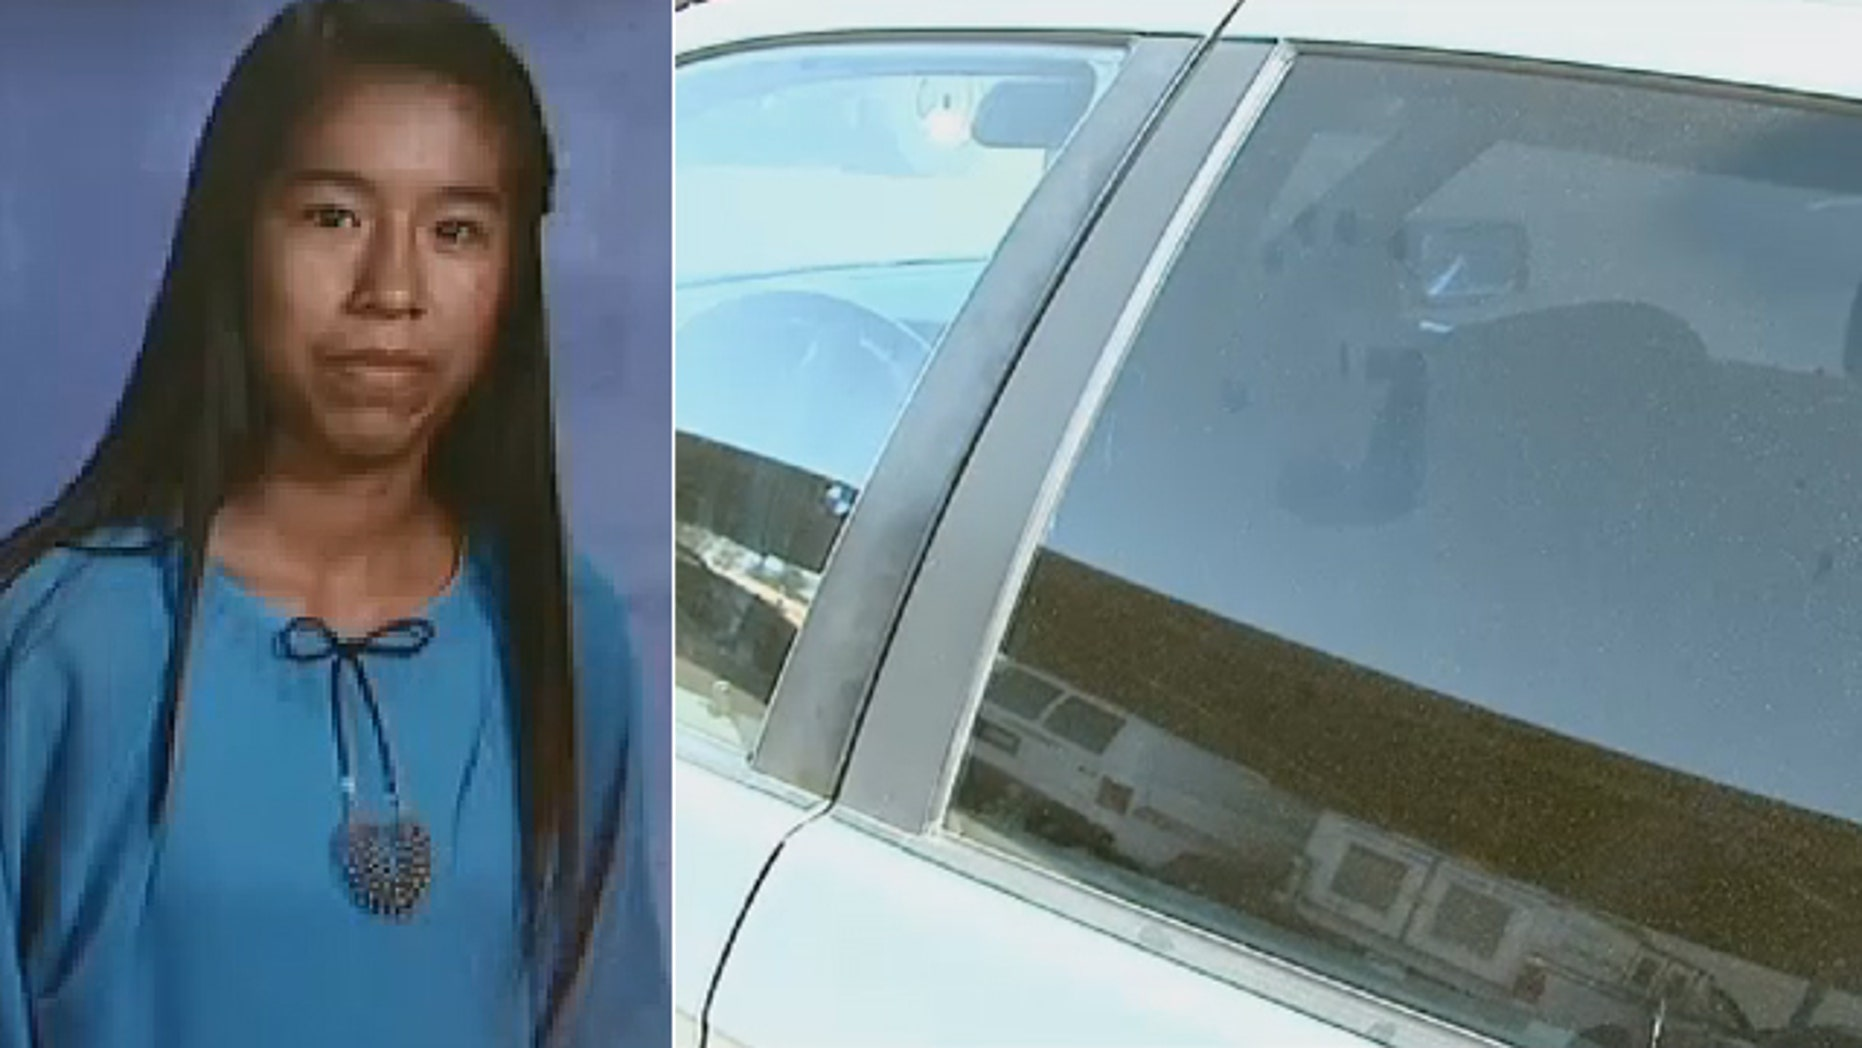 Graciela Martinez was found dead in the parking lot of Madera South High School.